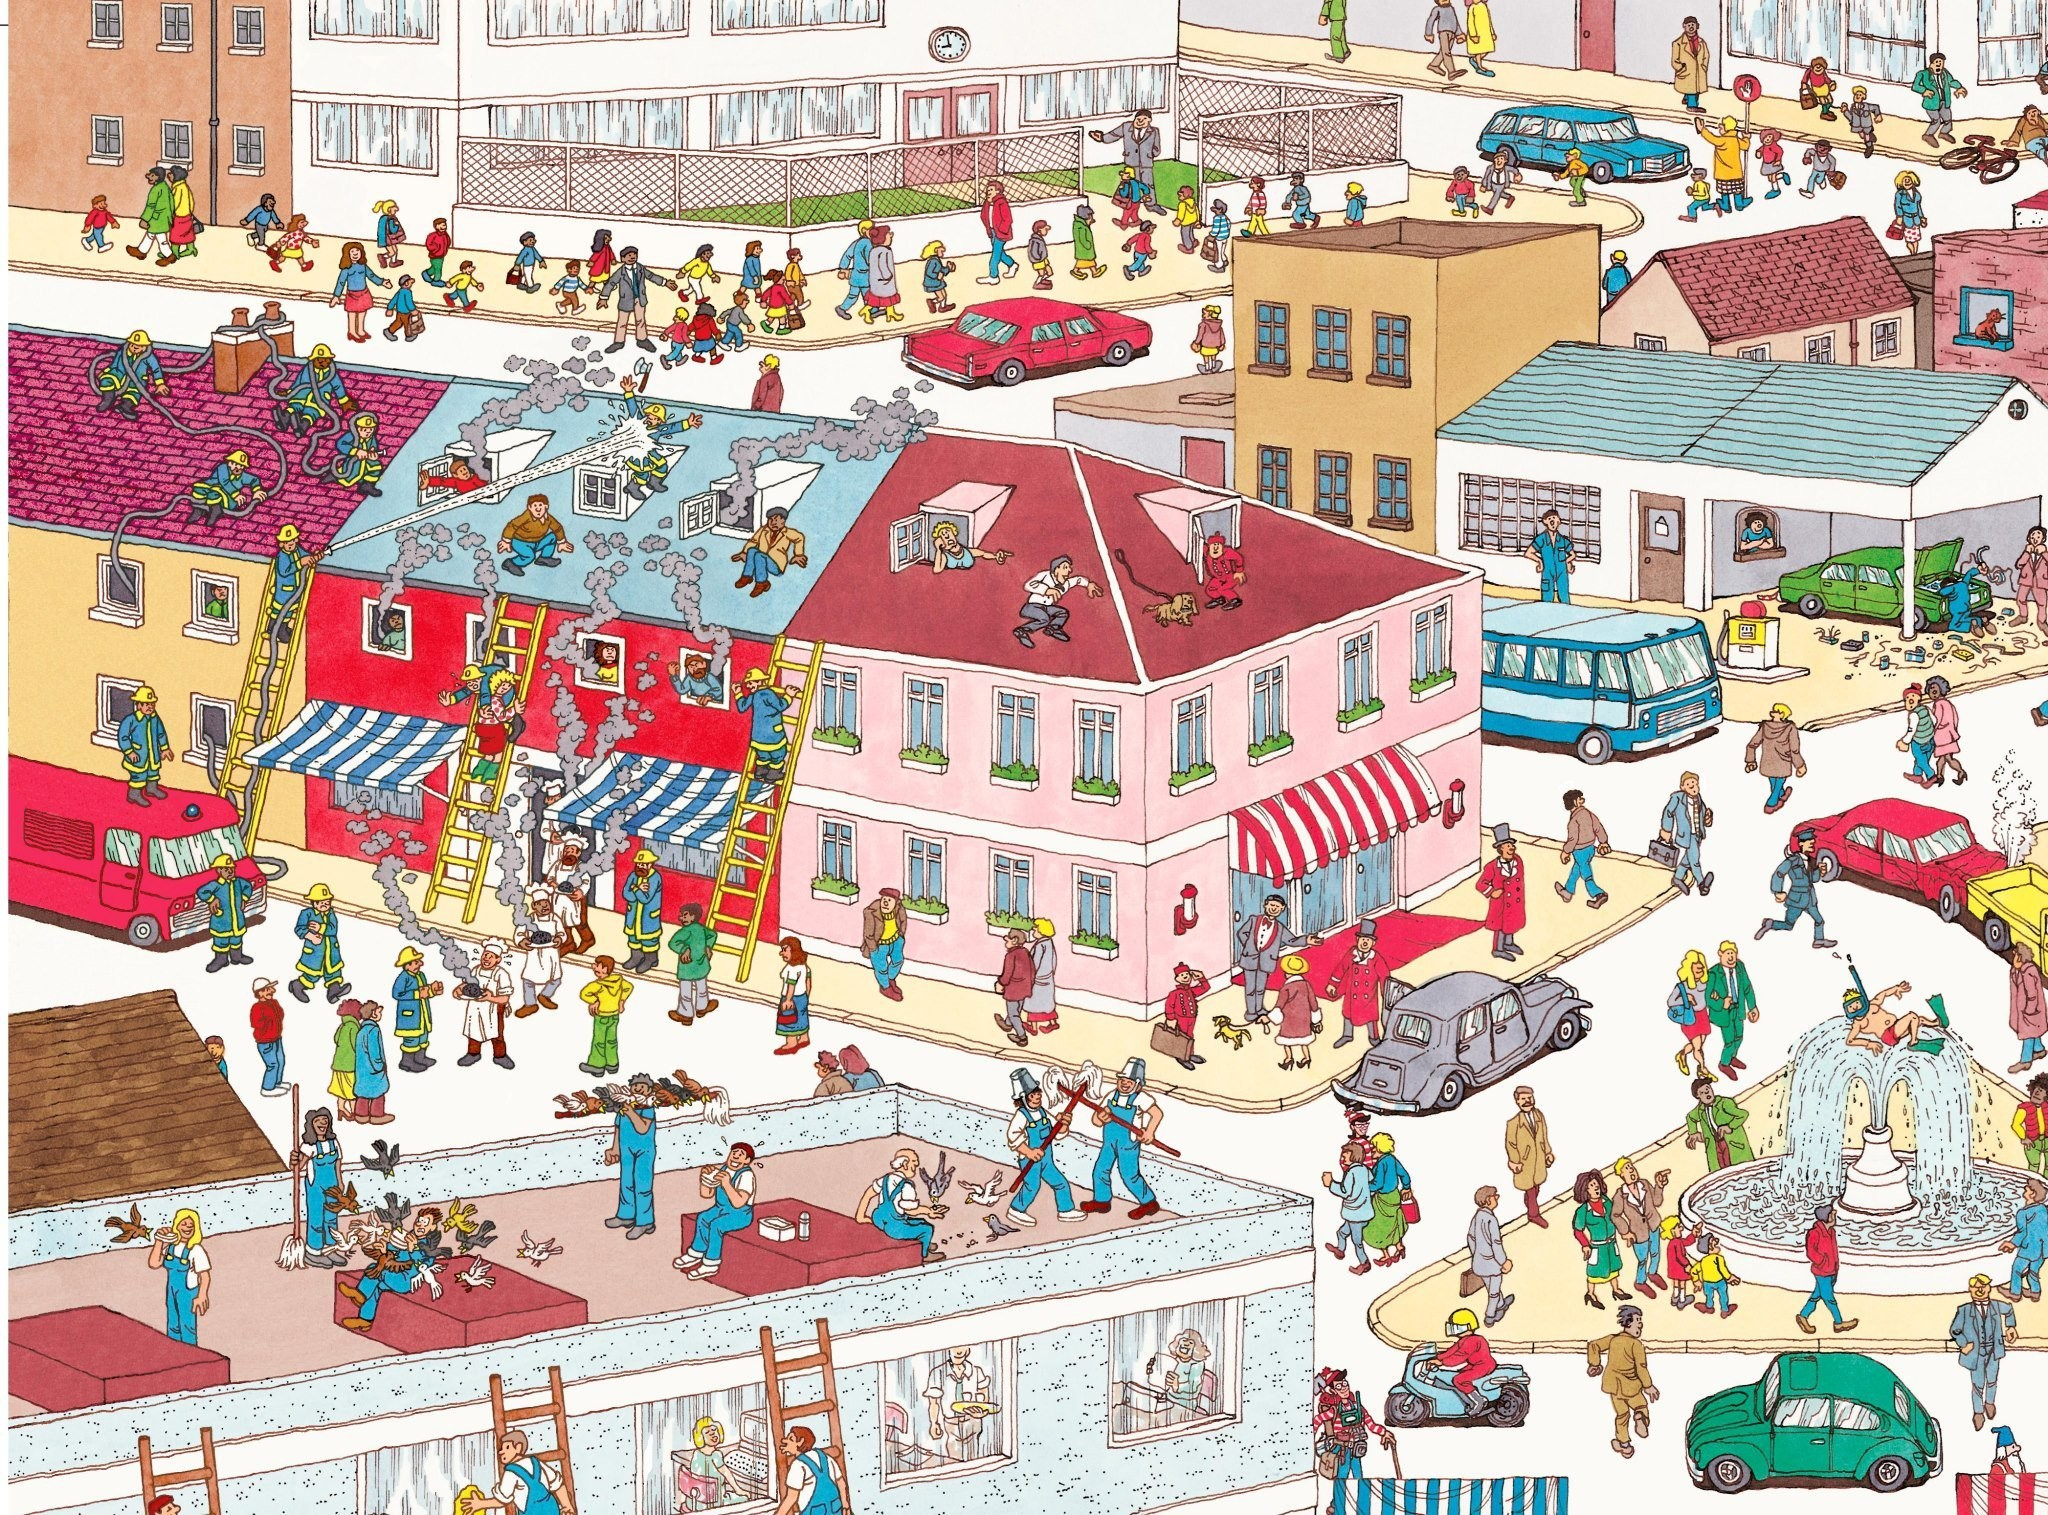 2048x1515 Wheres-wally preposition of place game (2048×1515) | Spanish Resources |  Pinterest | School